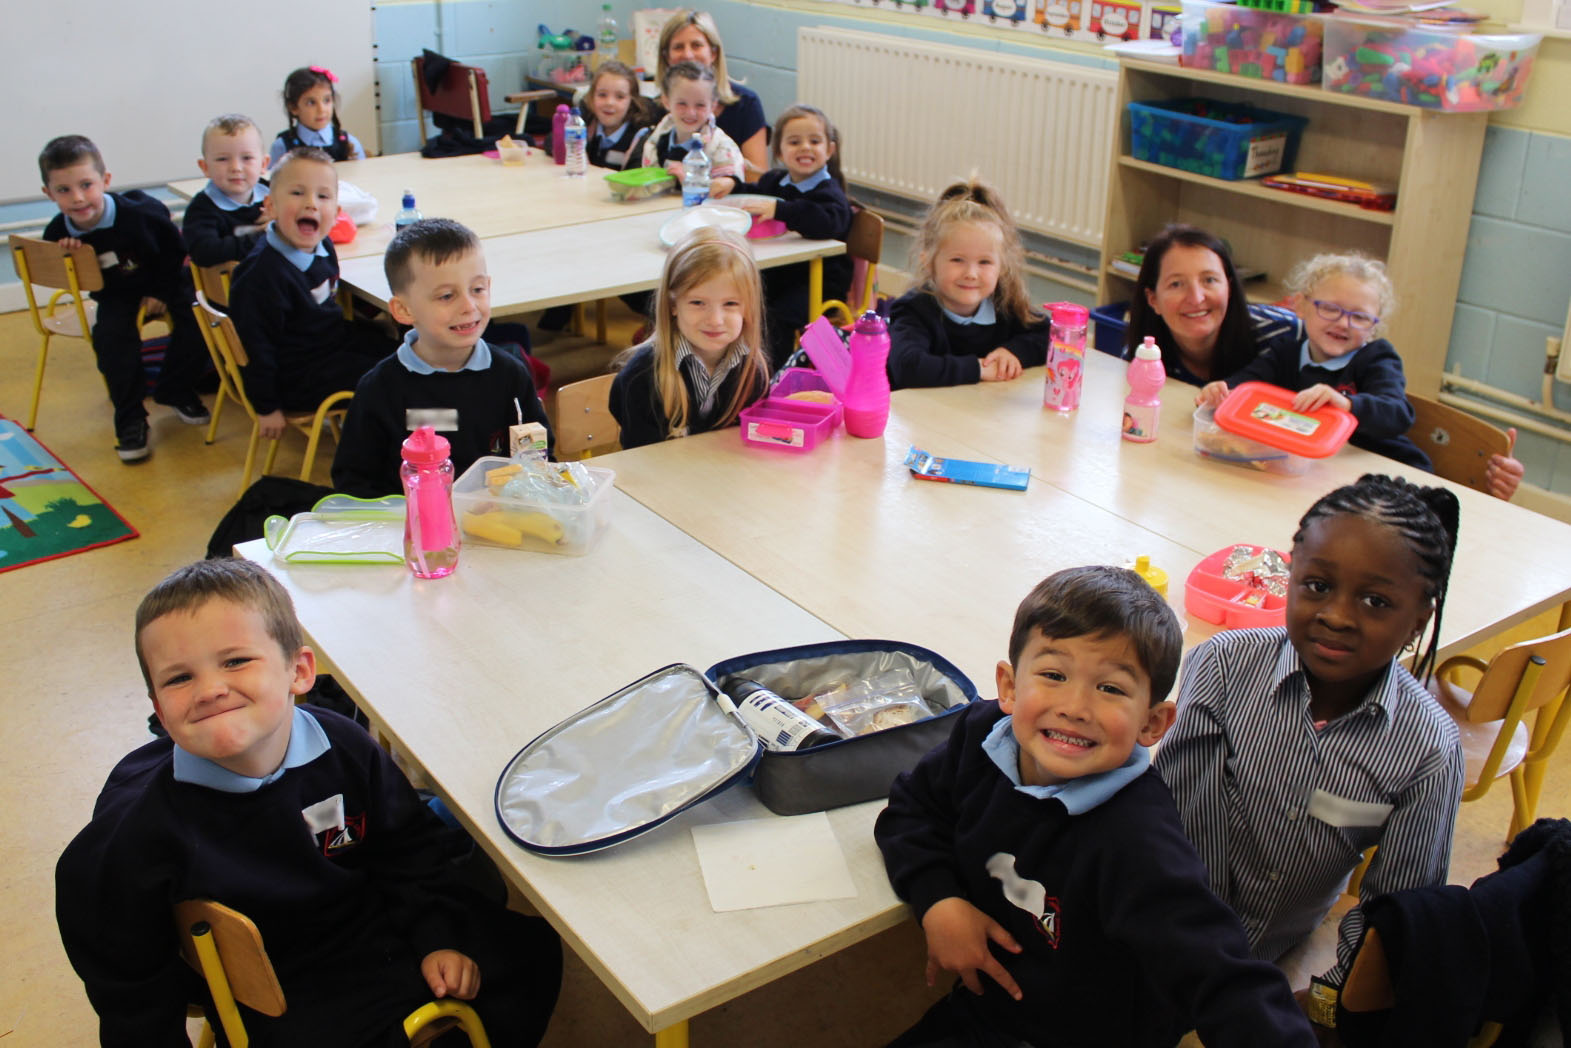 Junior Infants 2018-2019 First Day at School Walsh.JPG